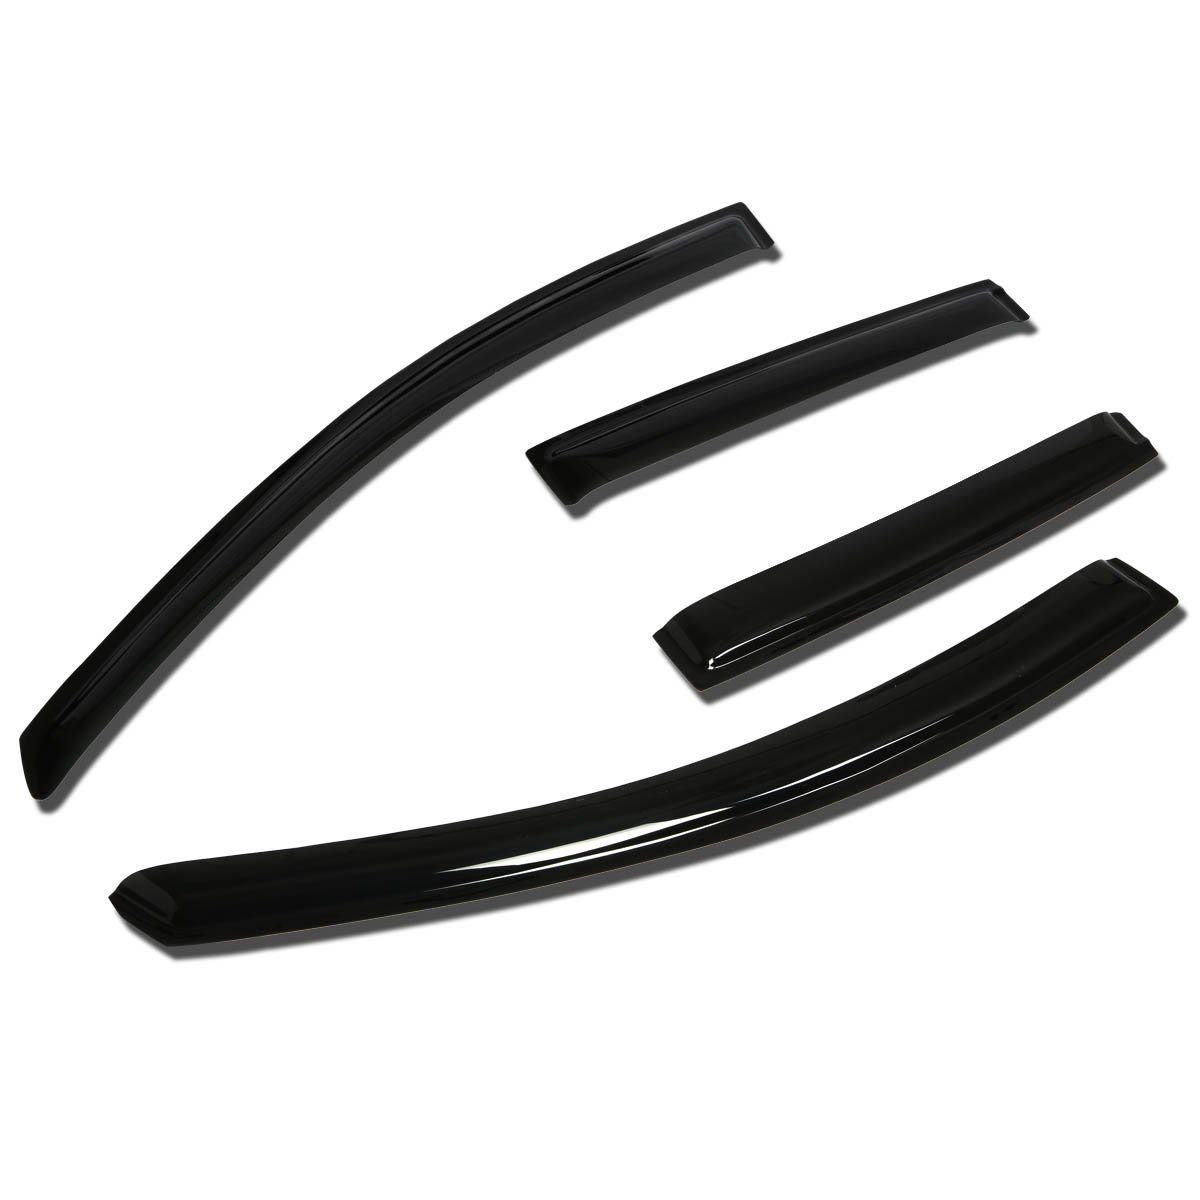 For Nissan Versa 4pcs Tapeon Window Visor Deflector Rain Guard You Can Find More Details By Visiting Nissan Versa Car Accessories Car Accessories For Girls